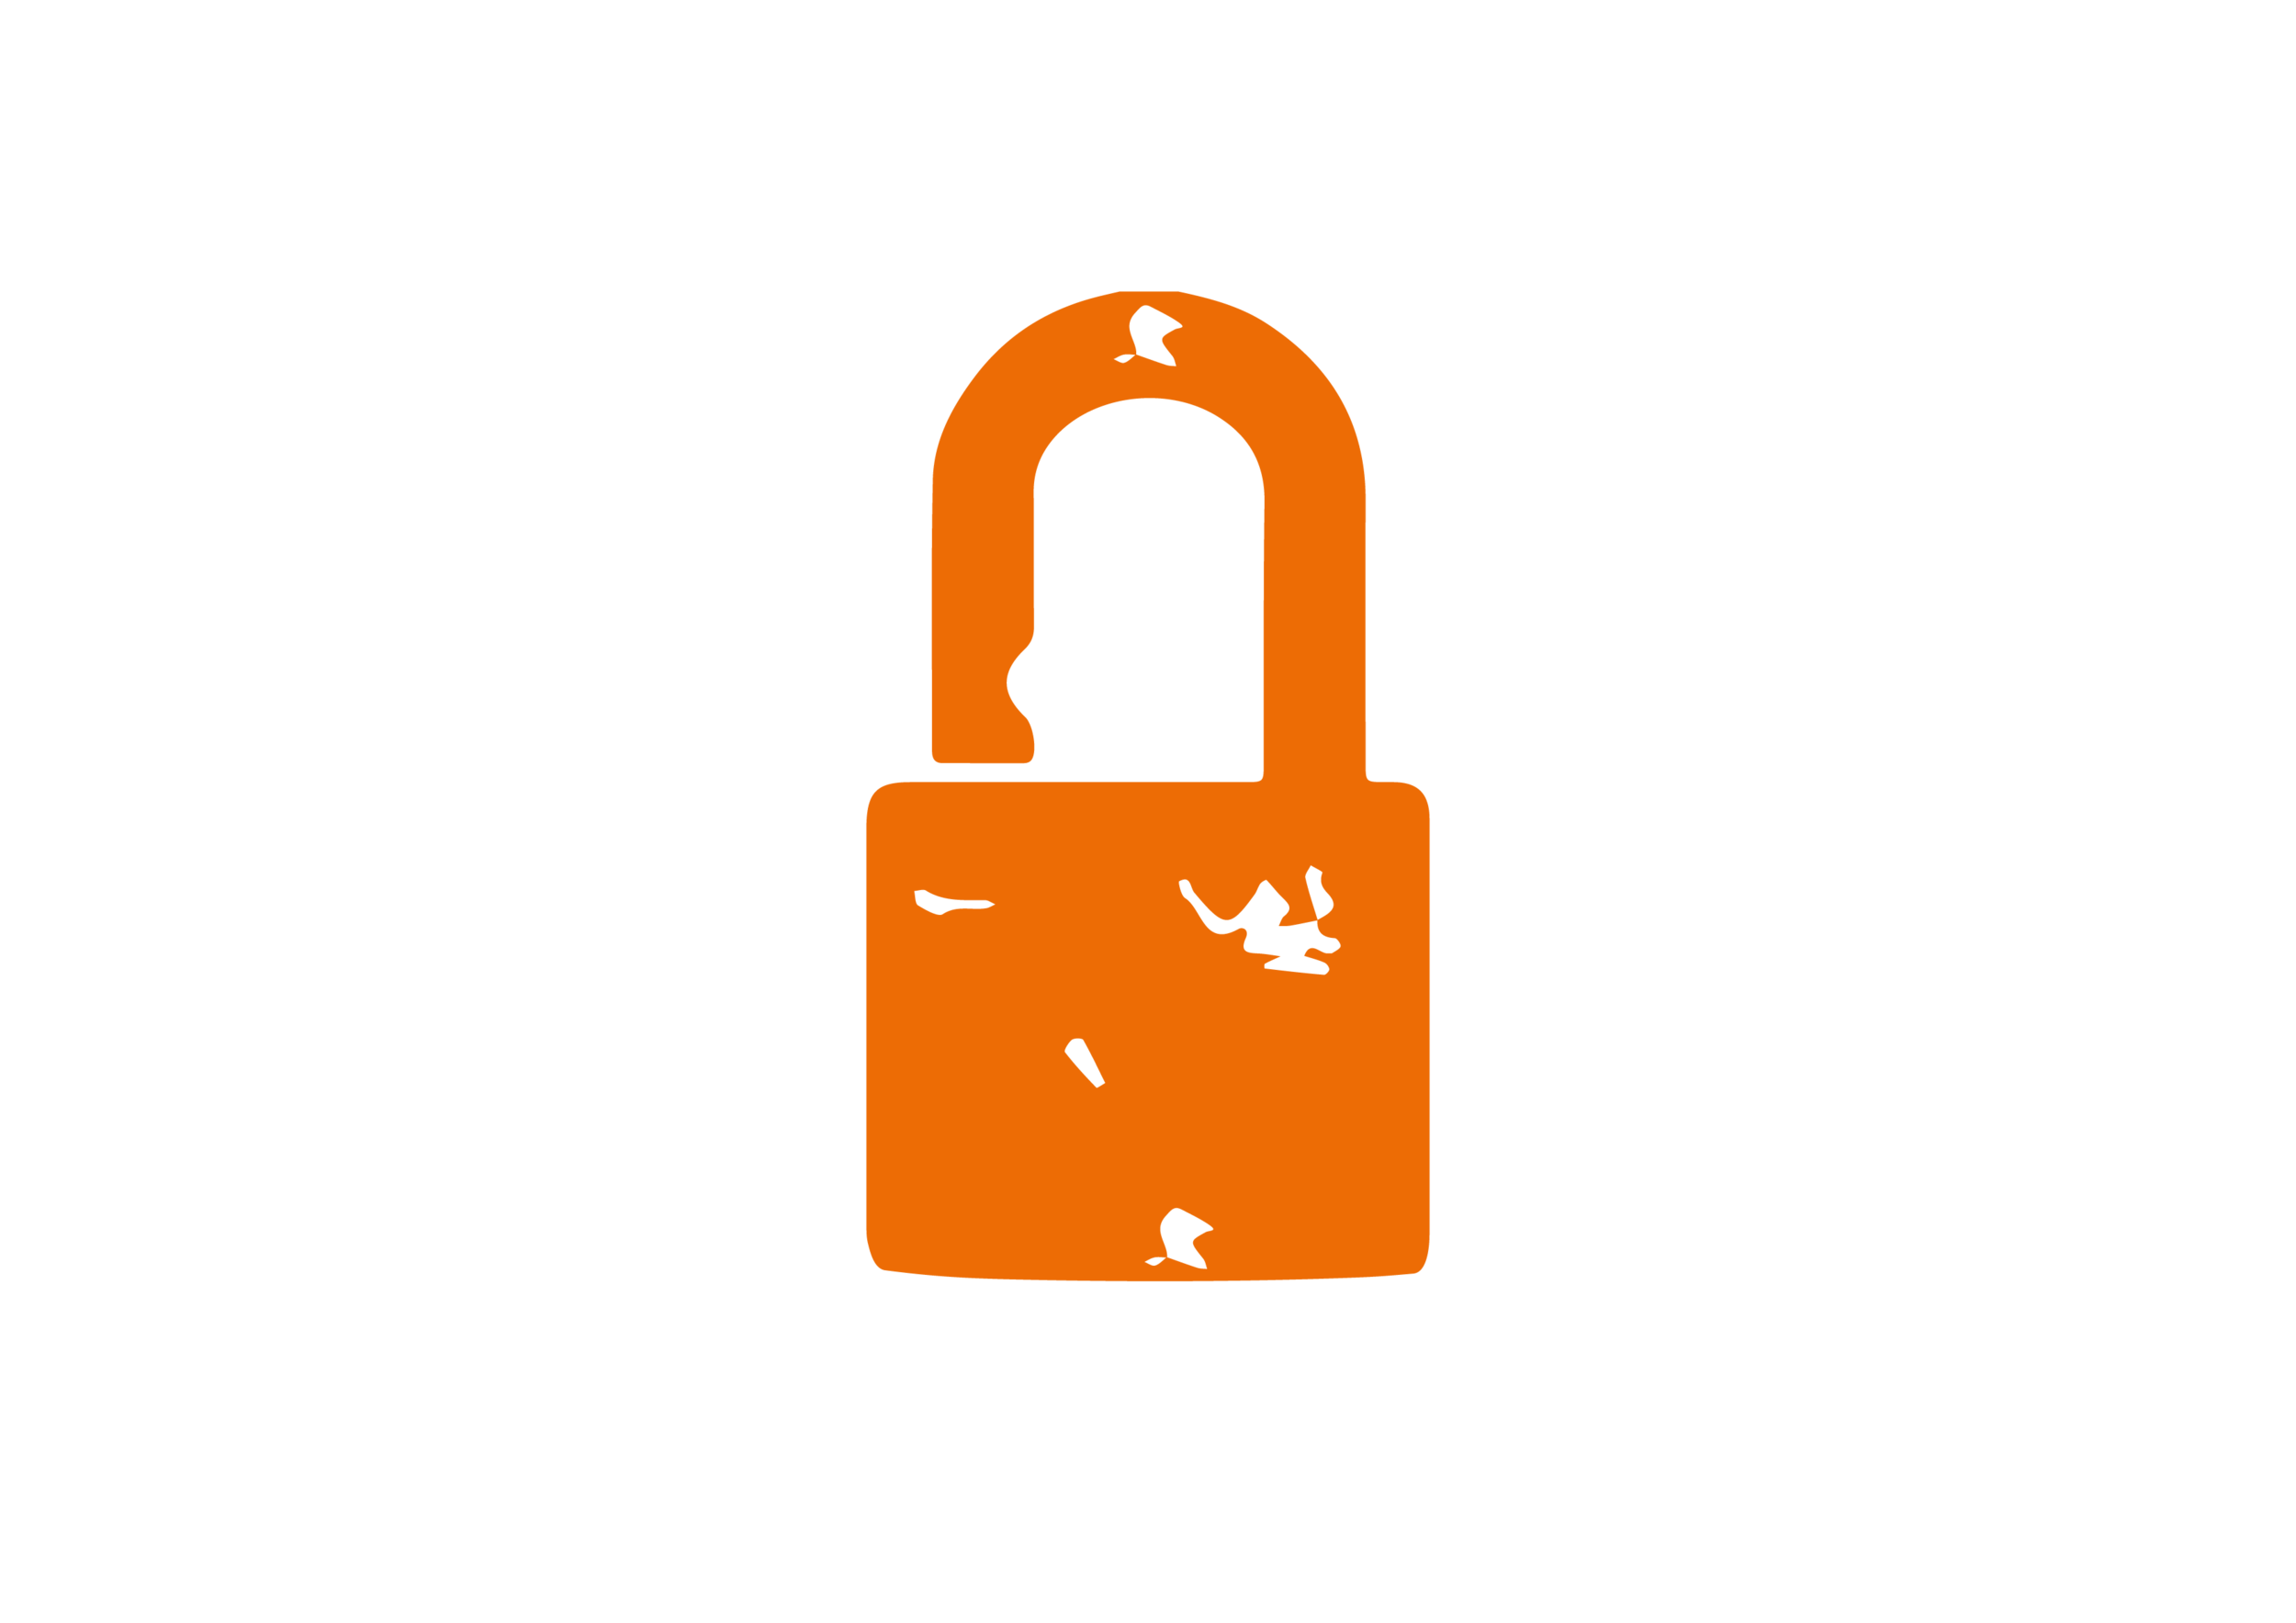 The_Locker_New_Logos02.png.rsp502q.partial.png